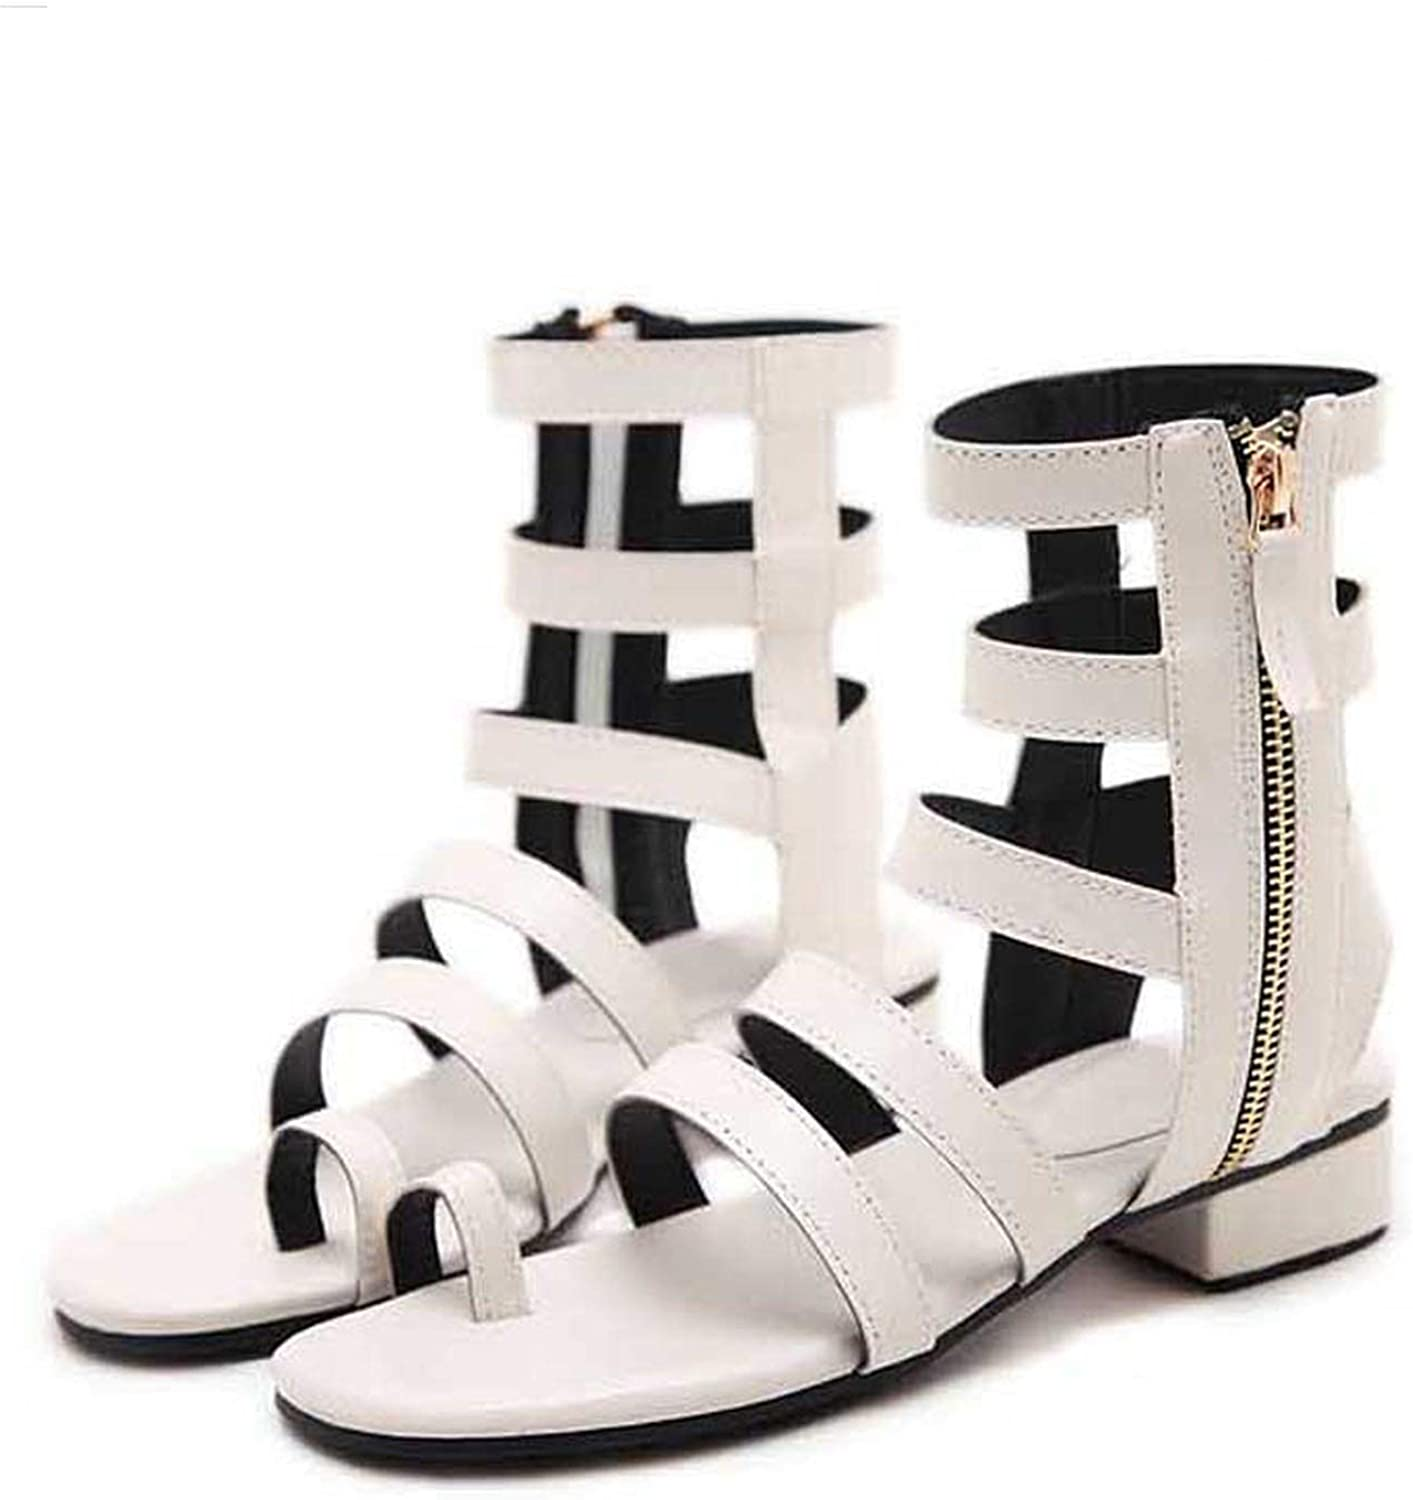 RAINIE002 2019 Women Sandals Open Toe Gladiator Sandals Boots Zipper Flat Sandals Size 35-40